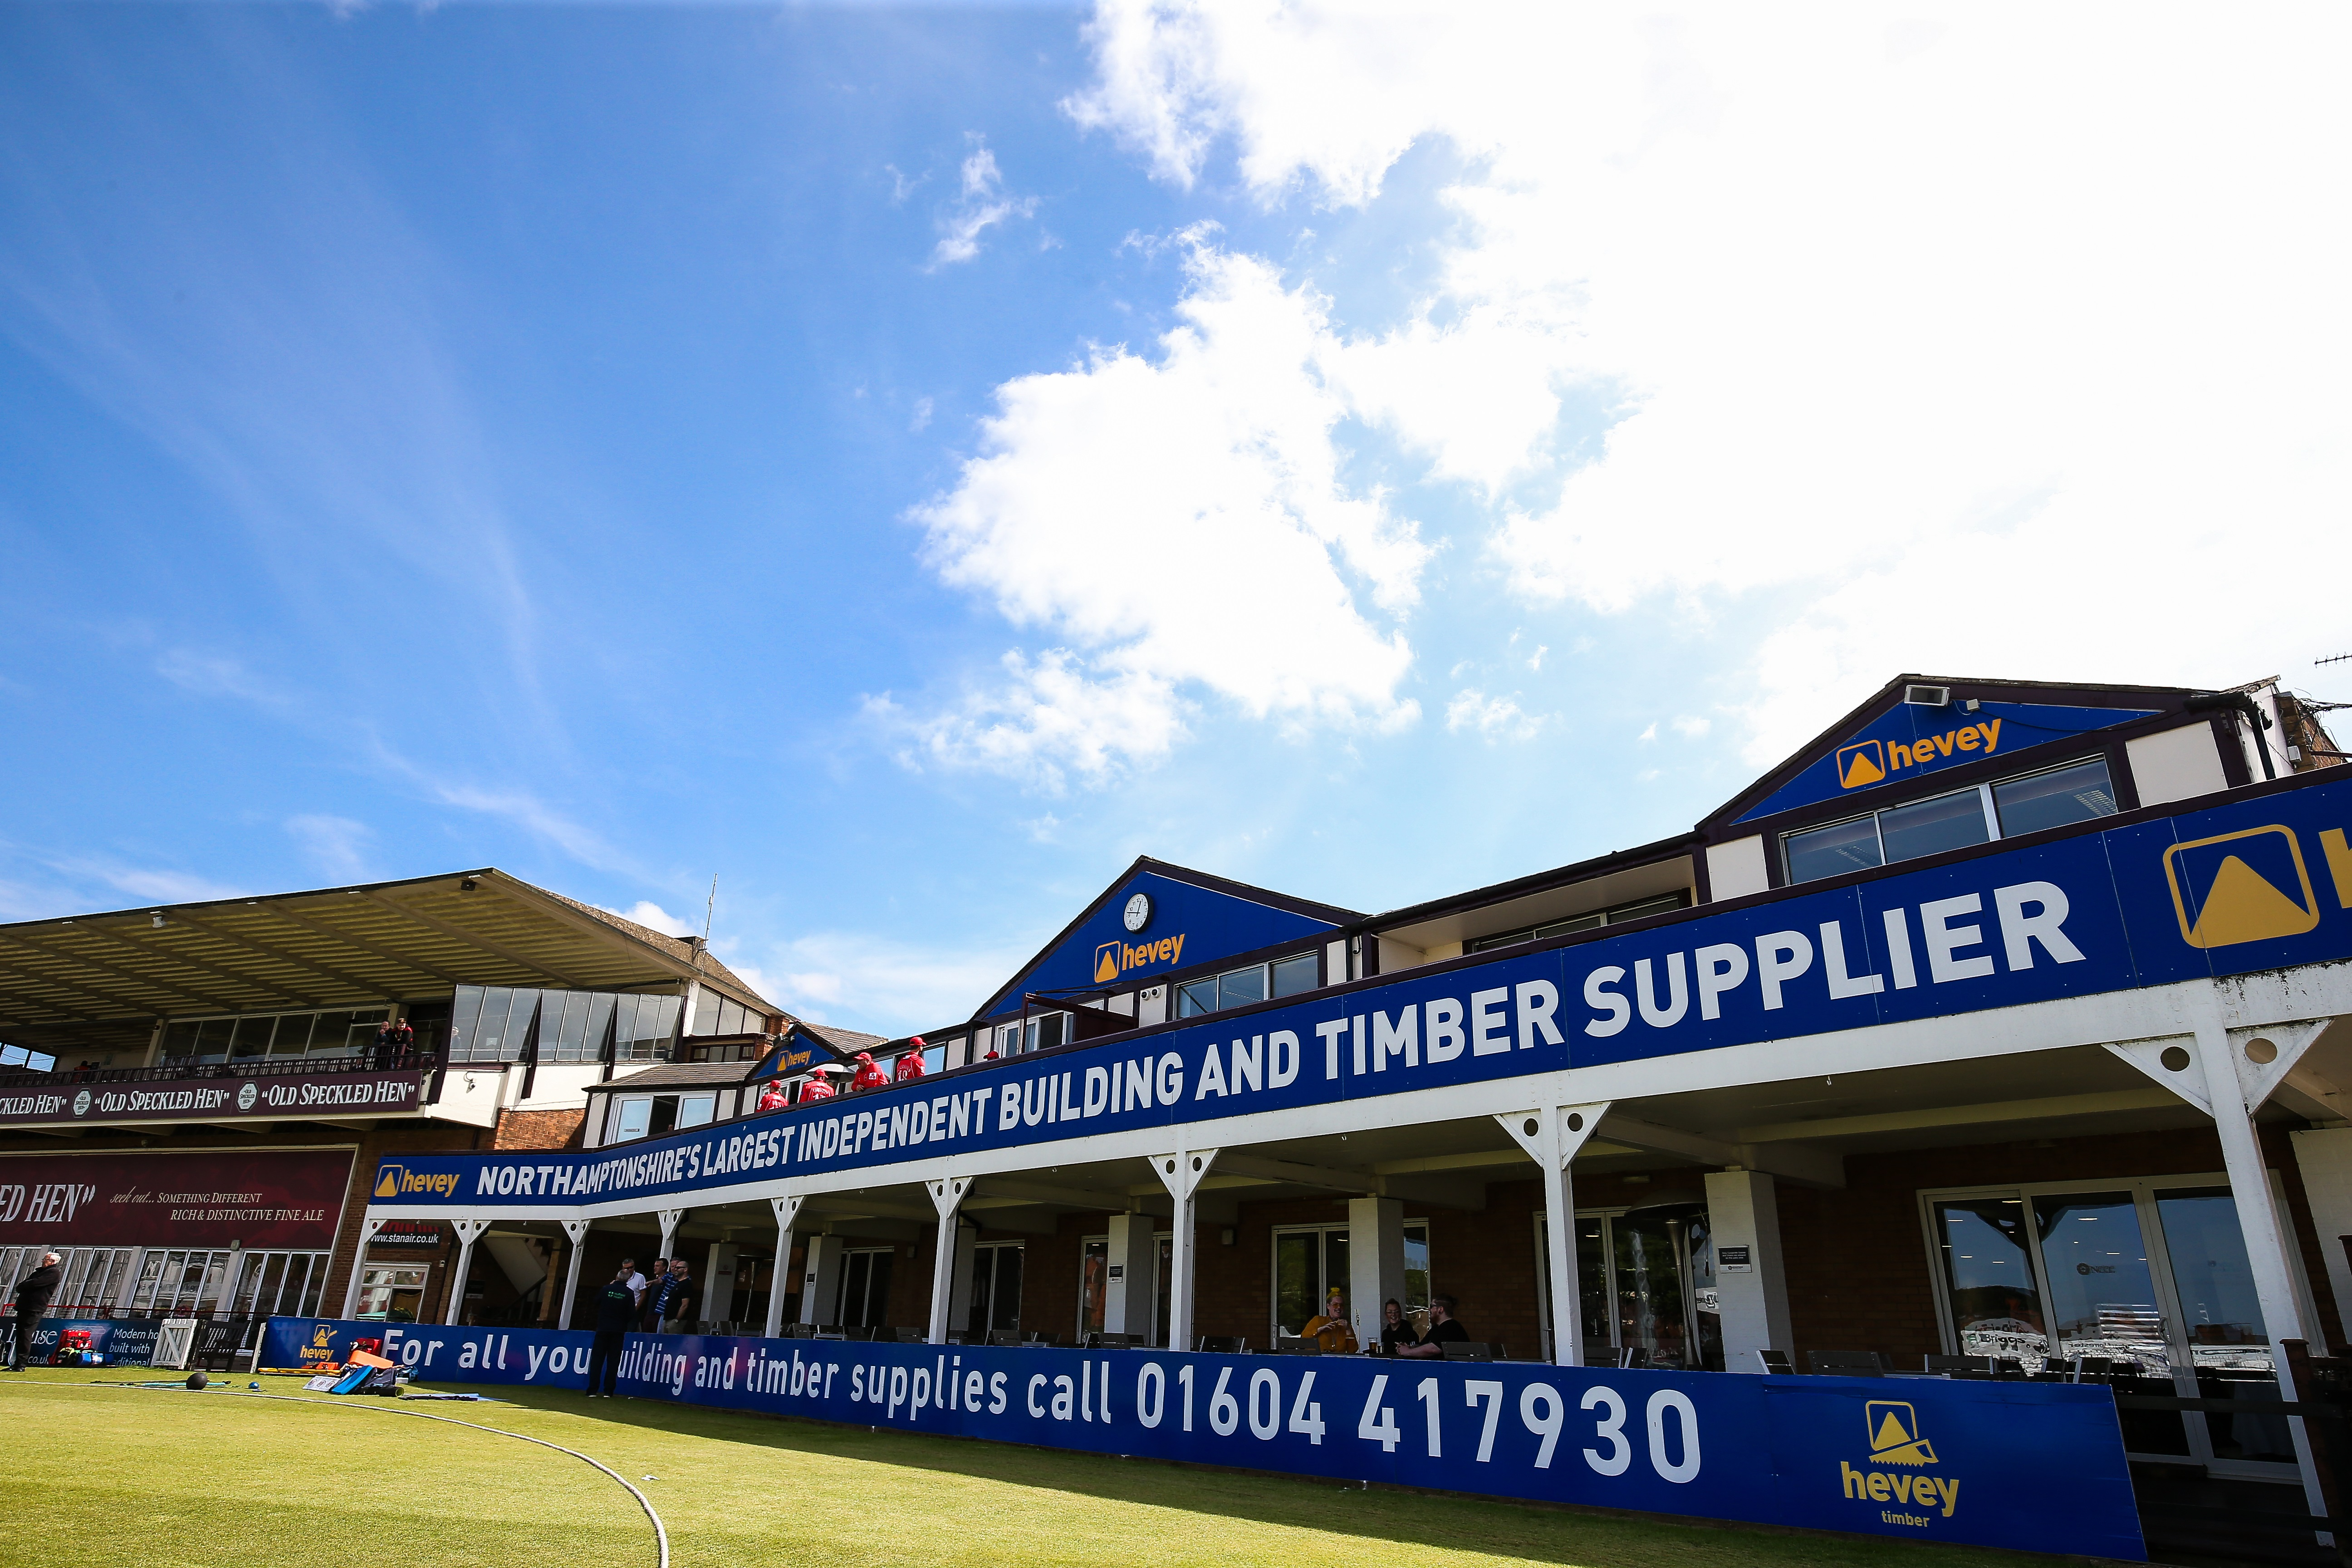 Hevey Building Supplies extend commitment to Northamptonshire CCC